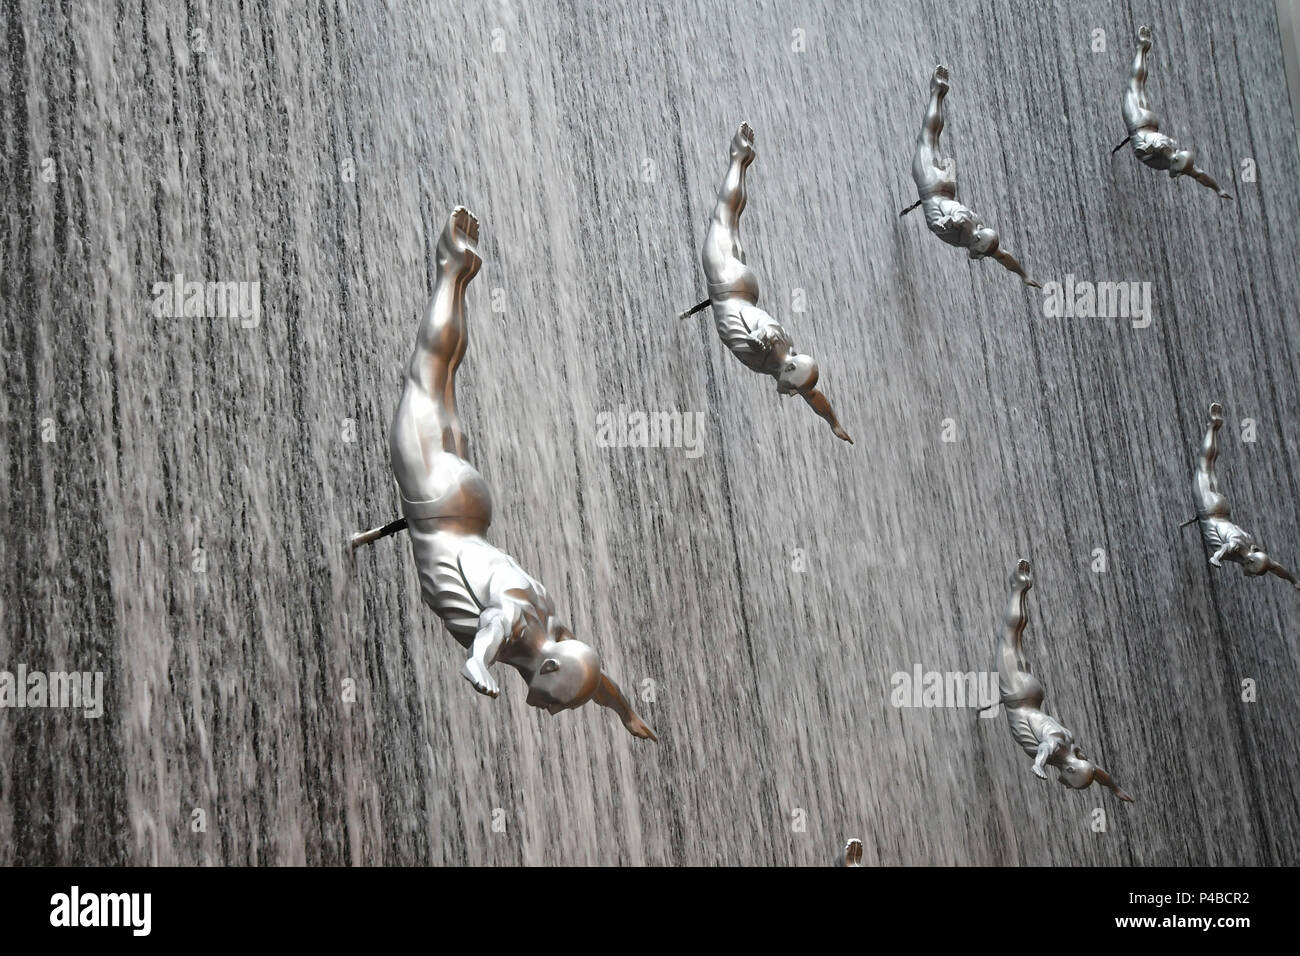 Flying man waterfall at Dubai mole, United Arab Emirates, Emirati, Middle East, Middle Eastern - Stock Image